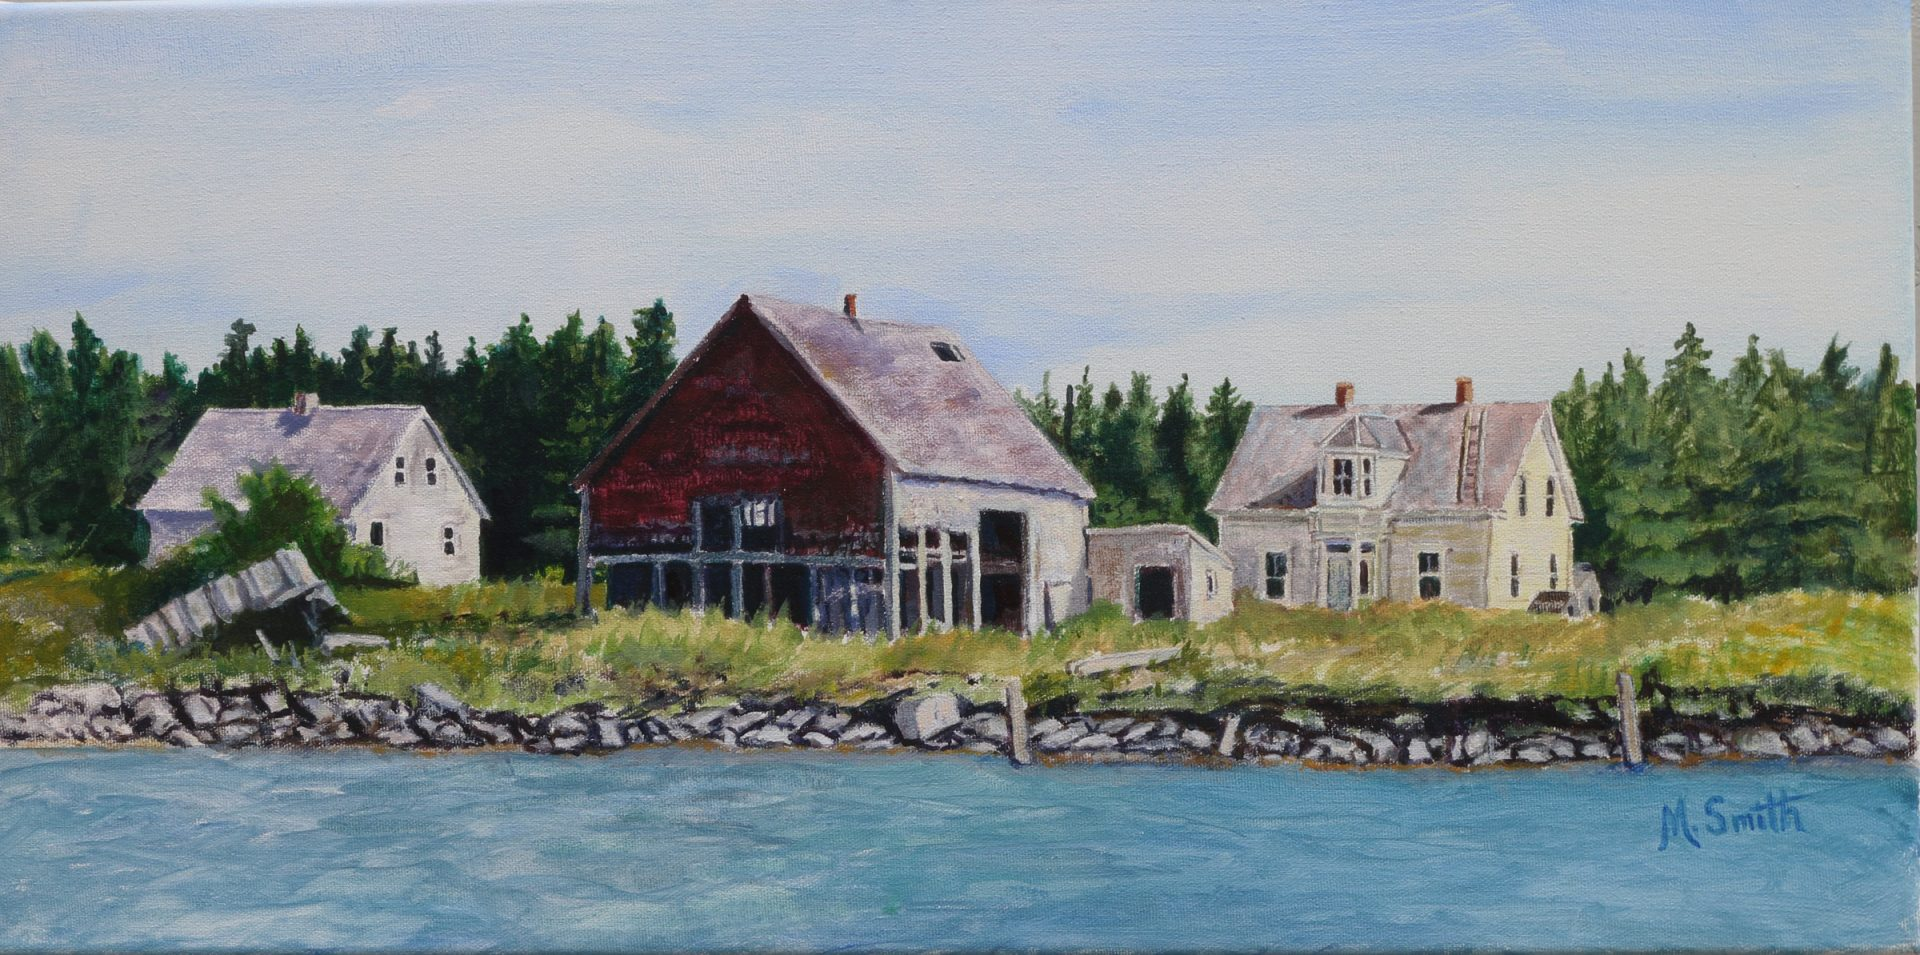 """""""West Spectacle Isl. 1988"""", Acrylic on canvas,12""""X 24"""",  SOLD"""